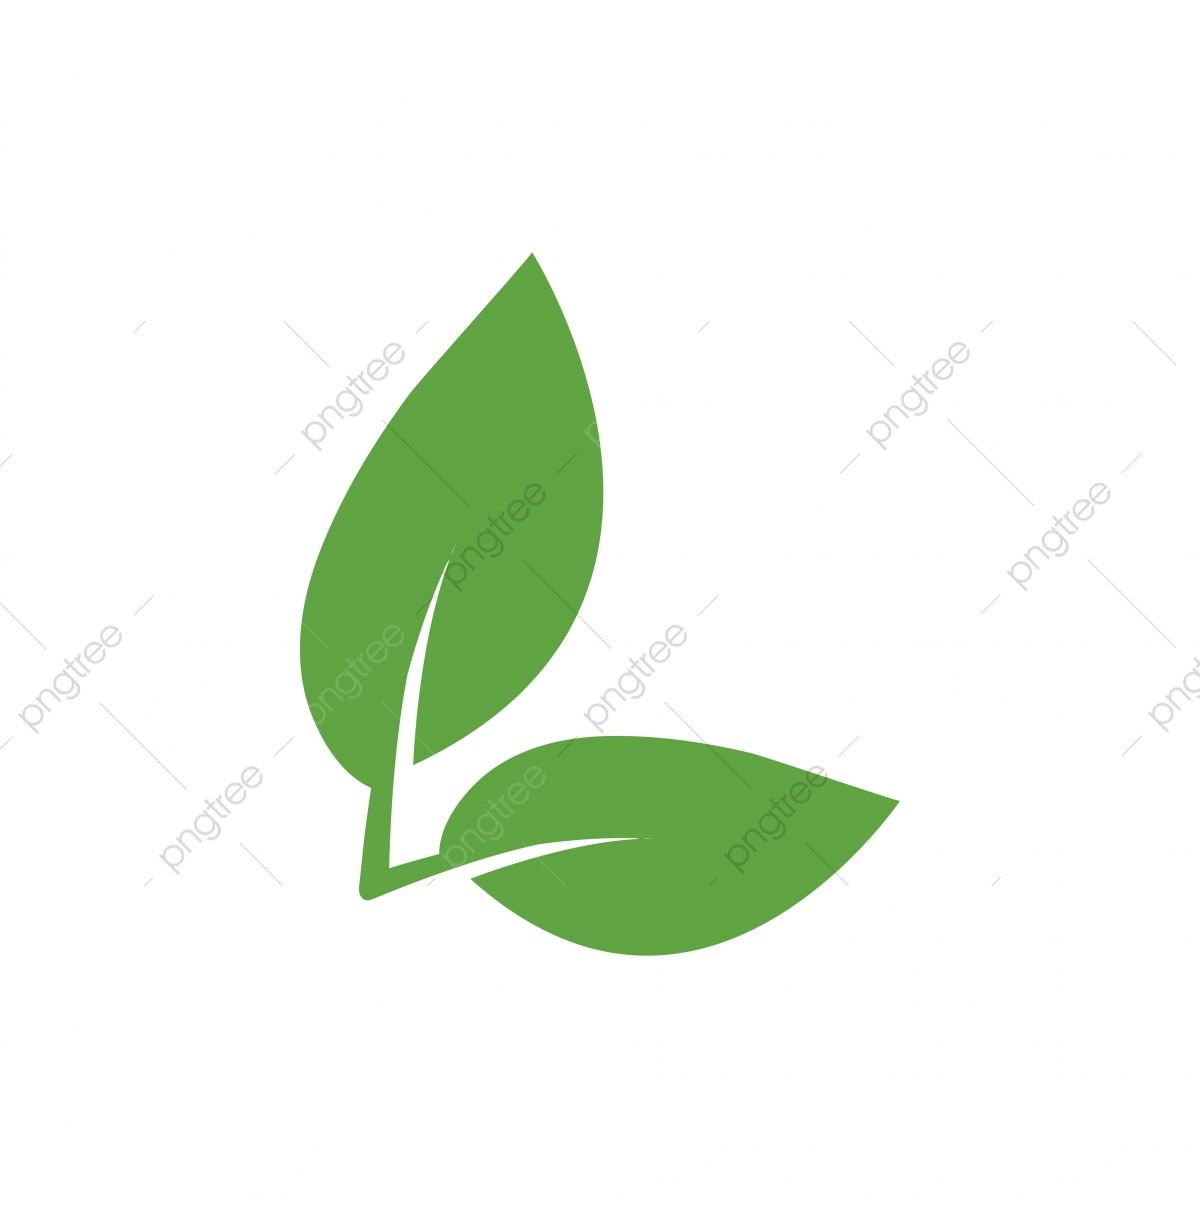 Green Leaf Icon Graphic Design Template Vector Leaf Clipart Leaf Icons Template Icons Png And Vector With Transparent Background For Free Download Graphic Design Templates Design Template Leaf Clipart